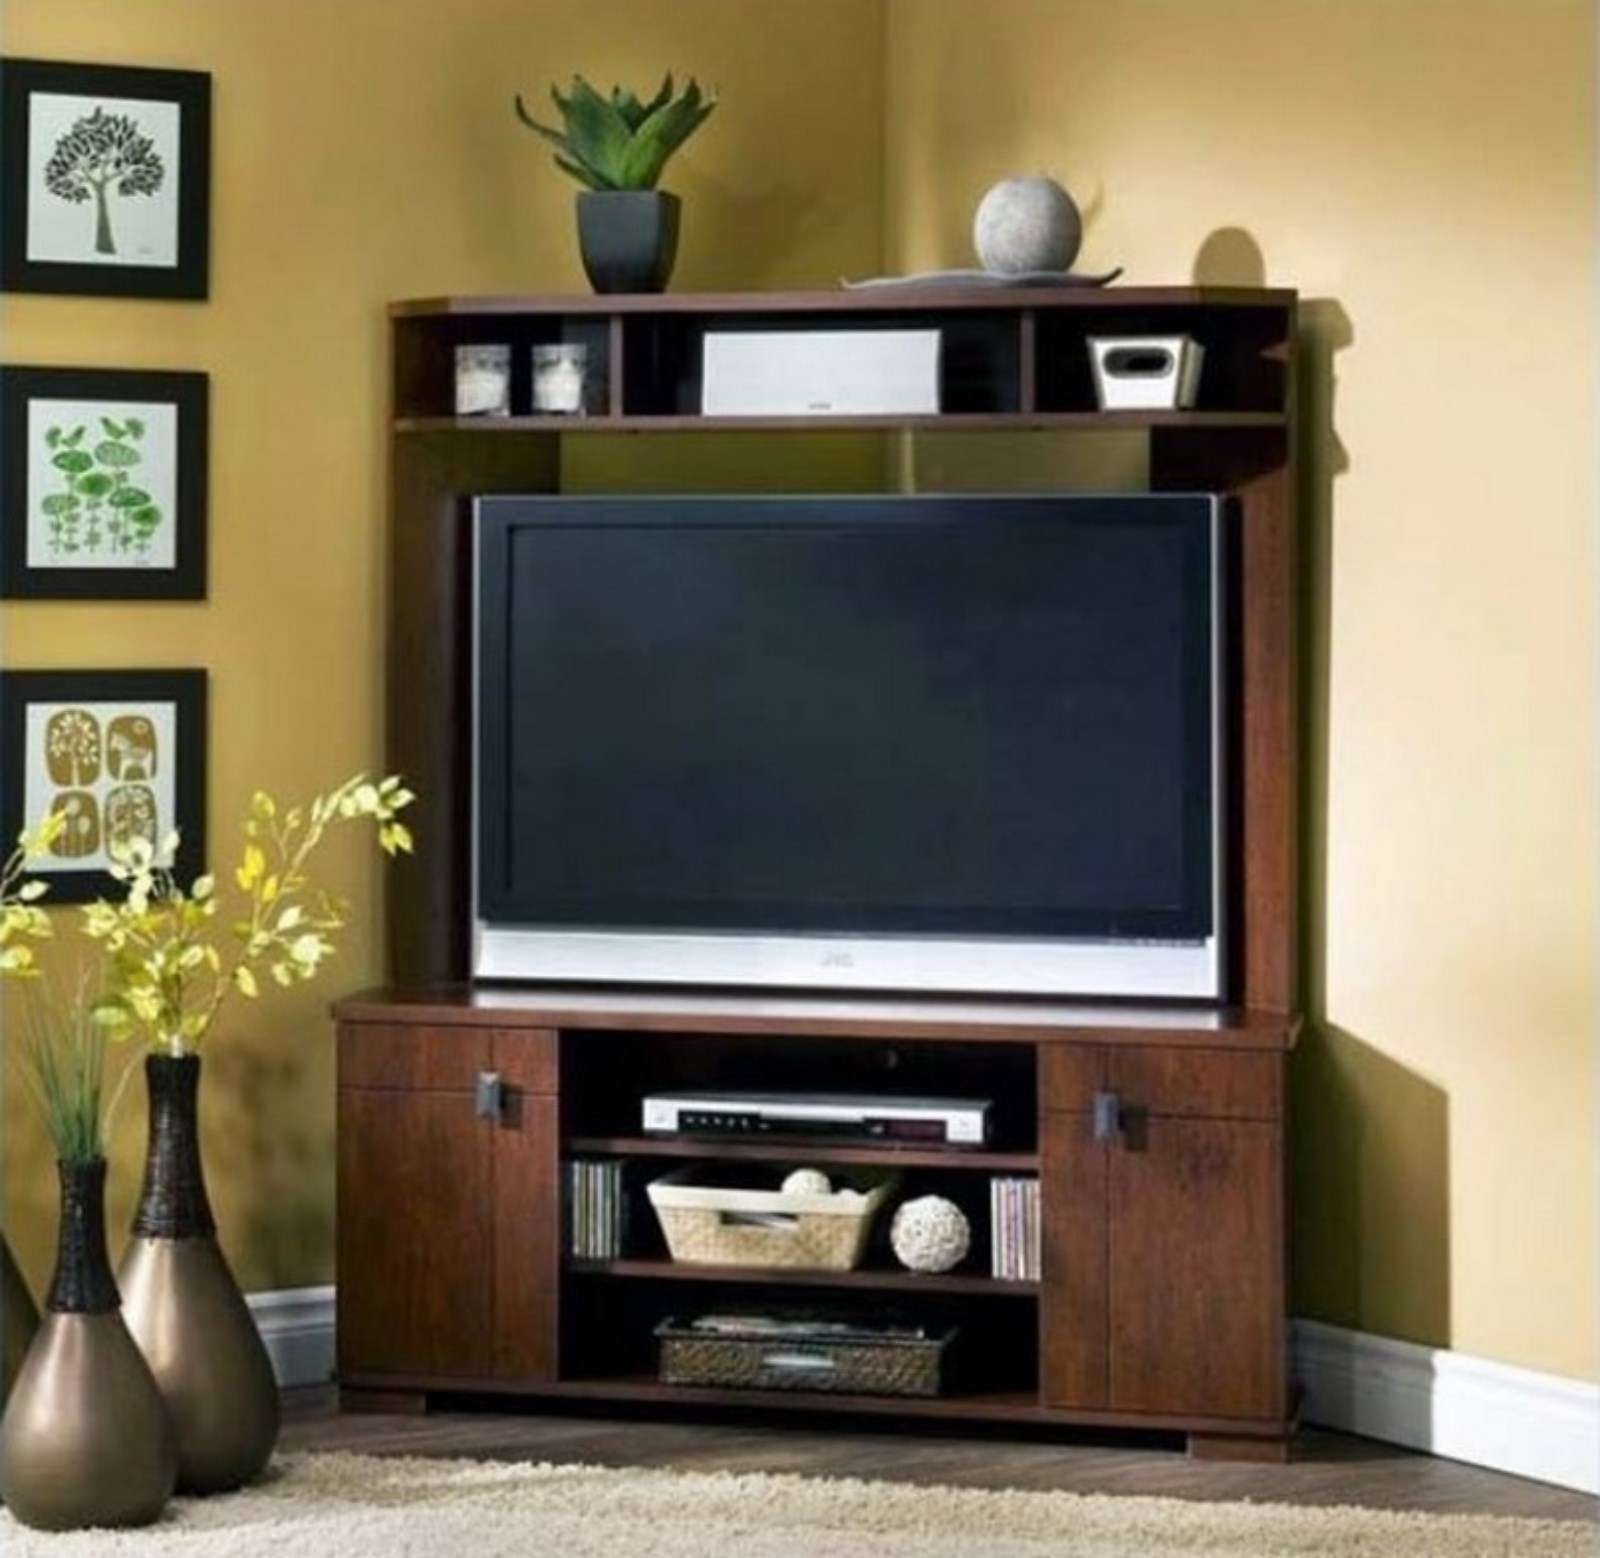 Tv Stand : Inch Corner Tv Stand With Mount Stands Inspiring Inside 55 Inch Corner Tv Stands (View 18 of 20)